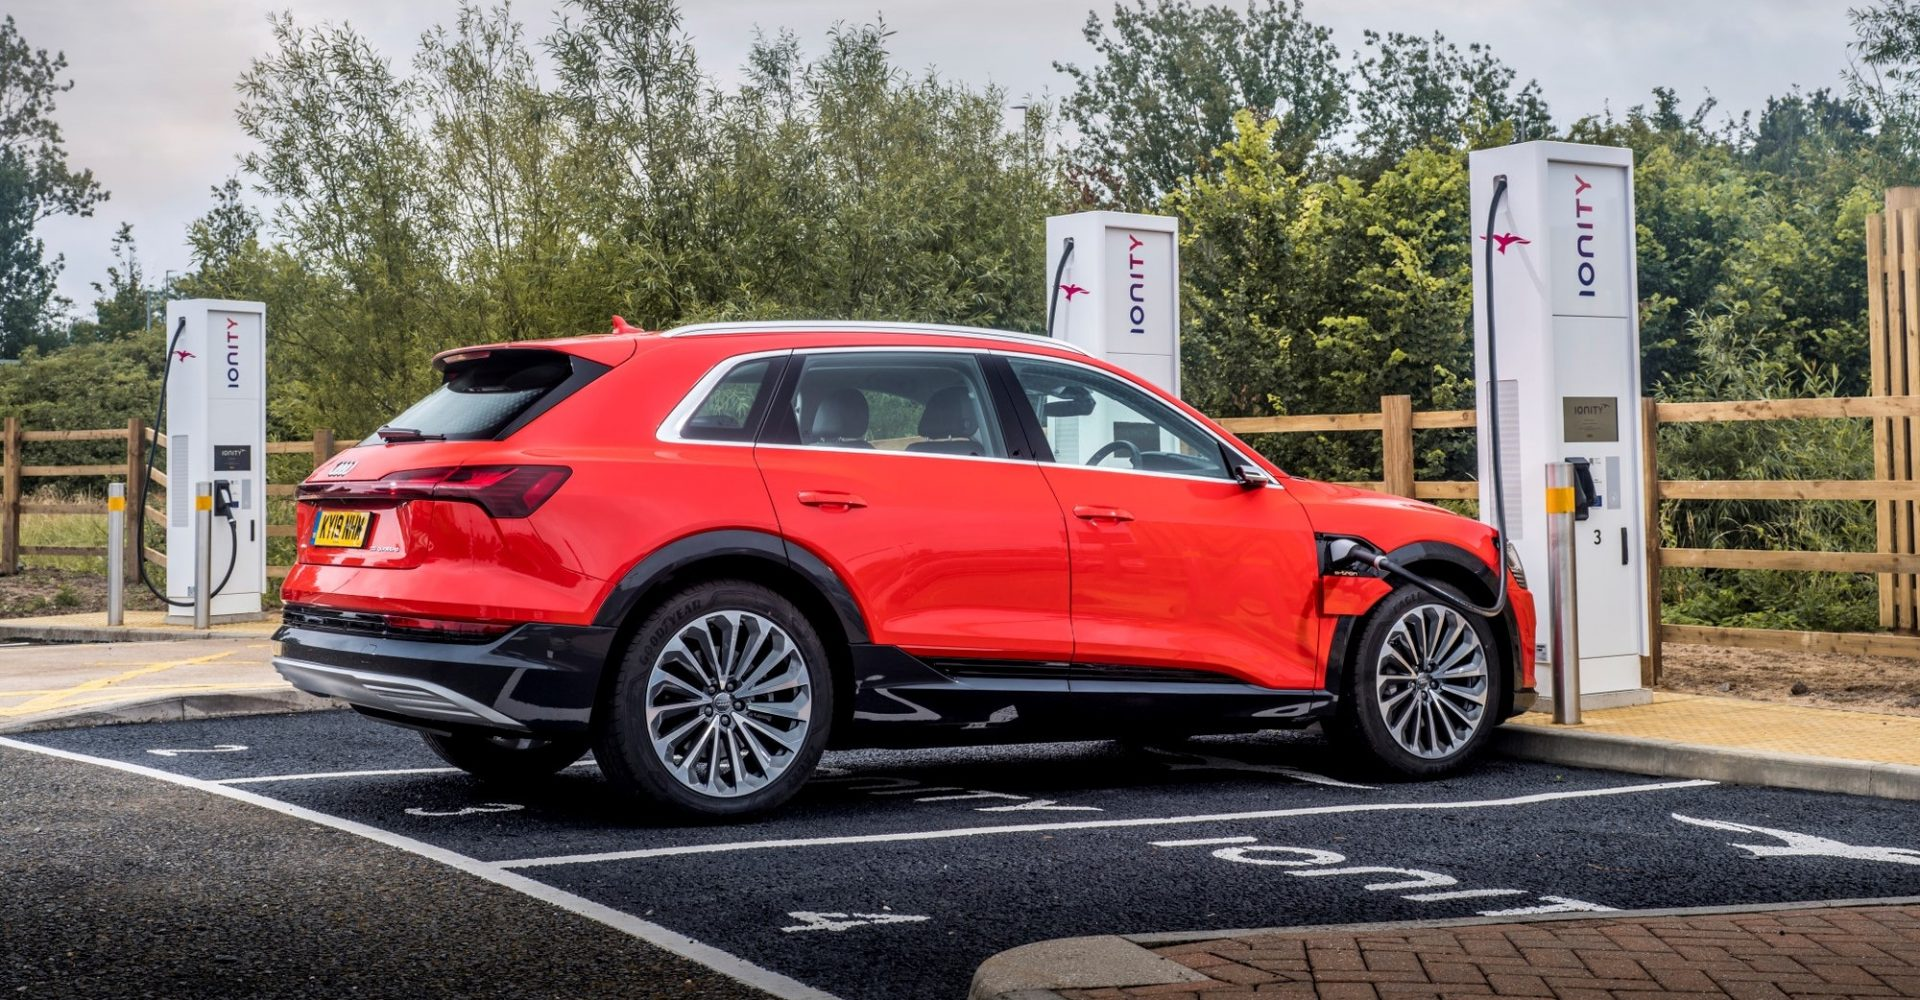 Audi's EV customers can text experts questions about ownership